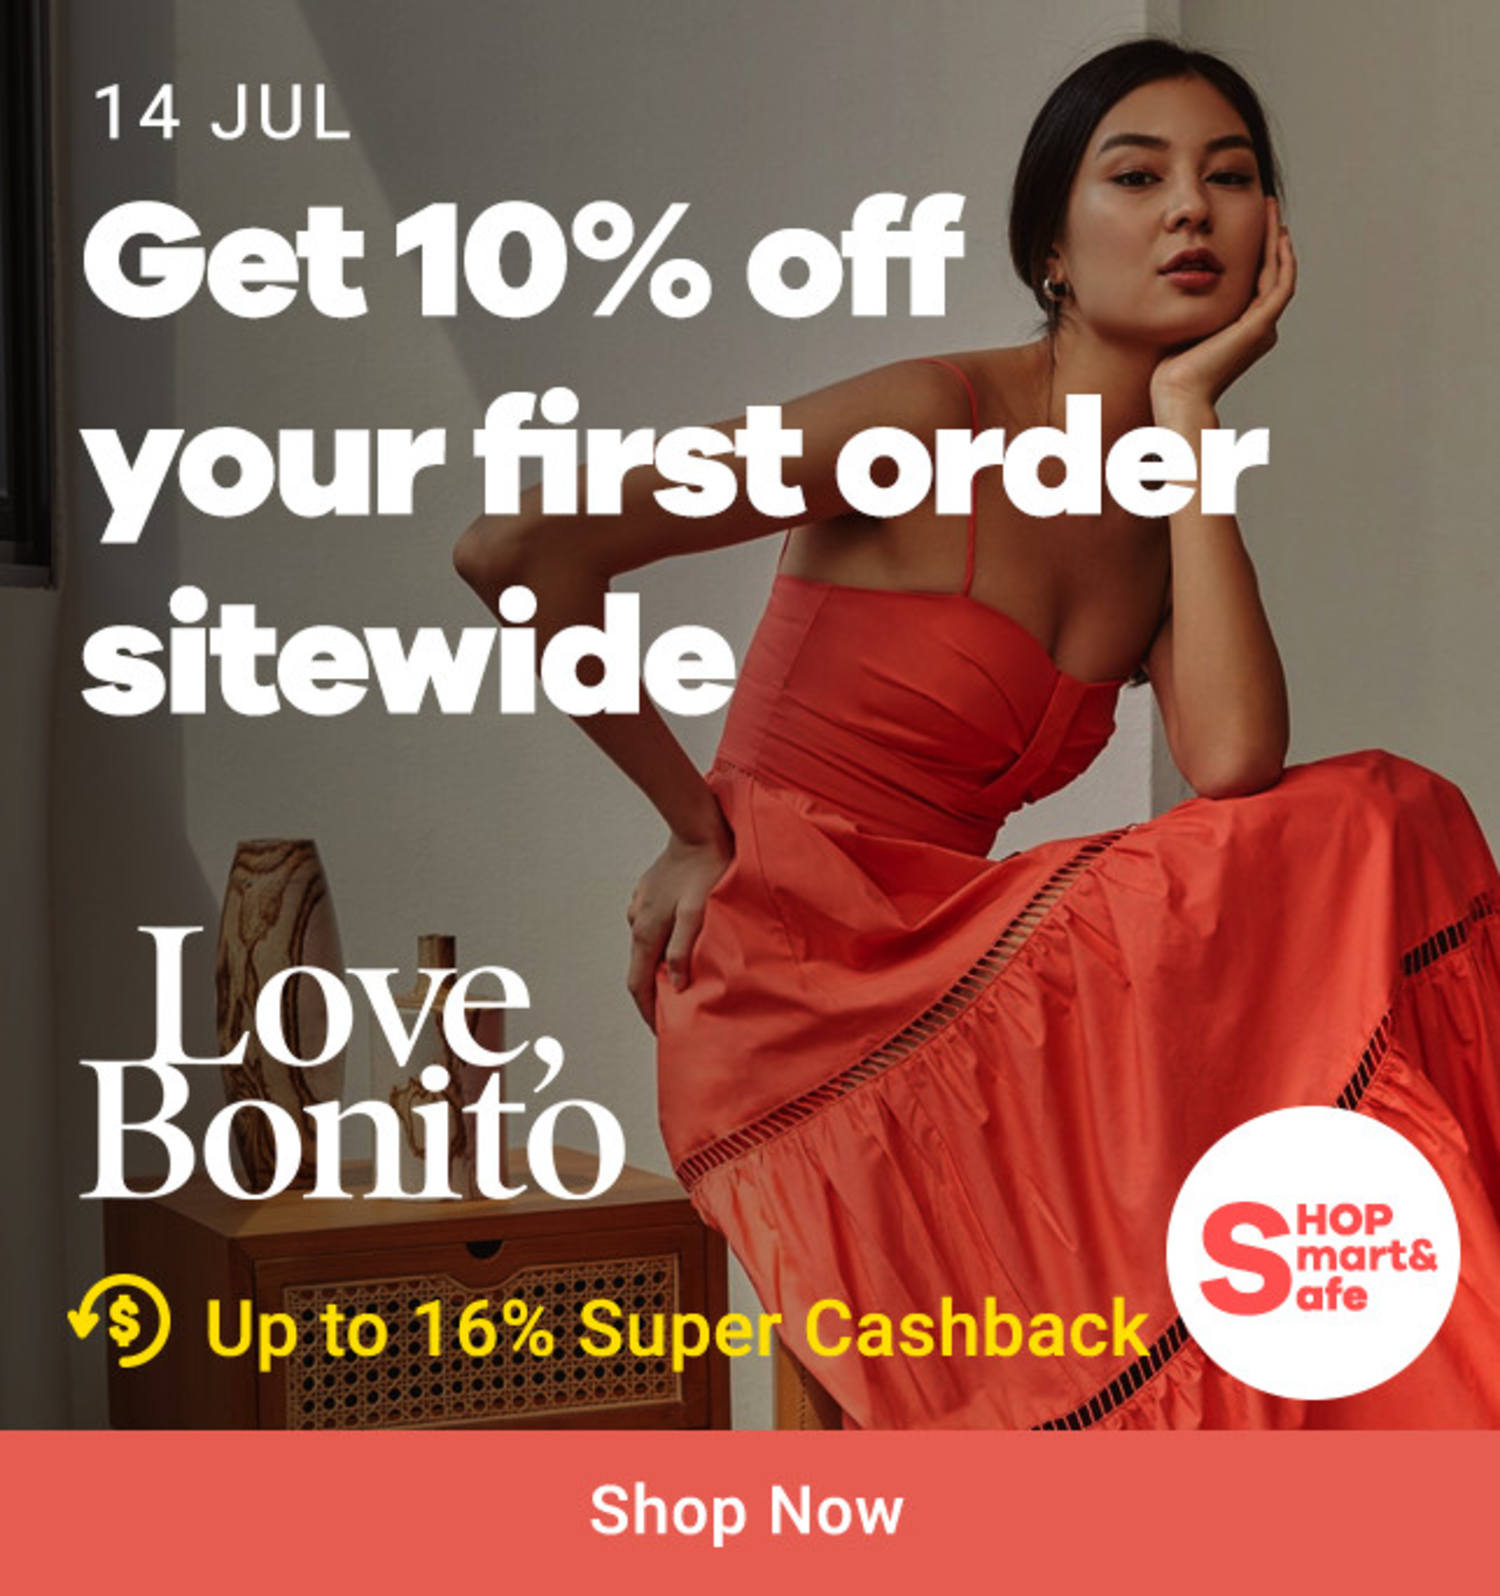 Love Bonito: Get 10% off your first order sitewide